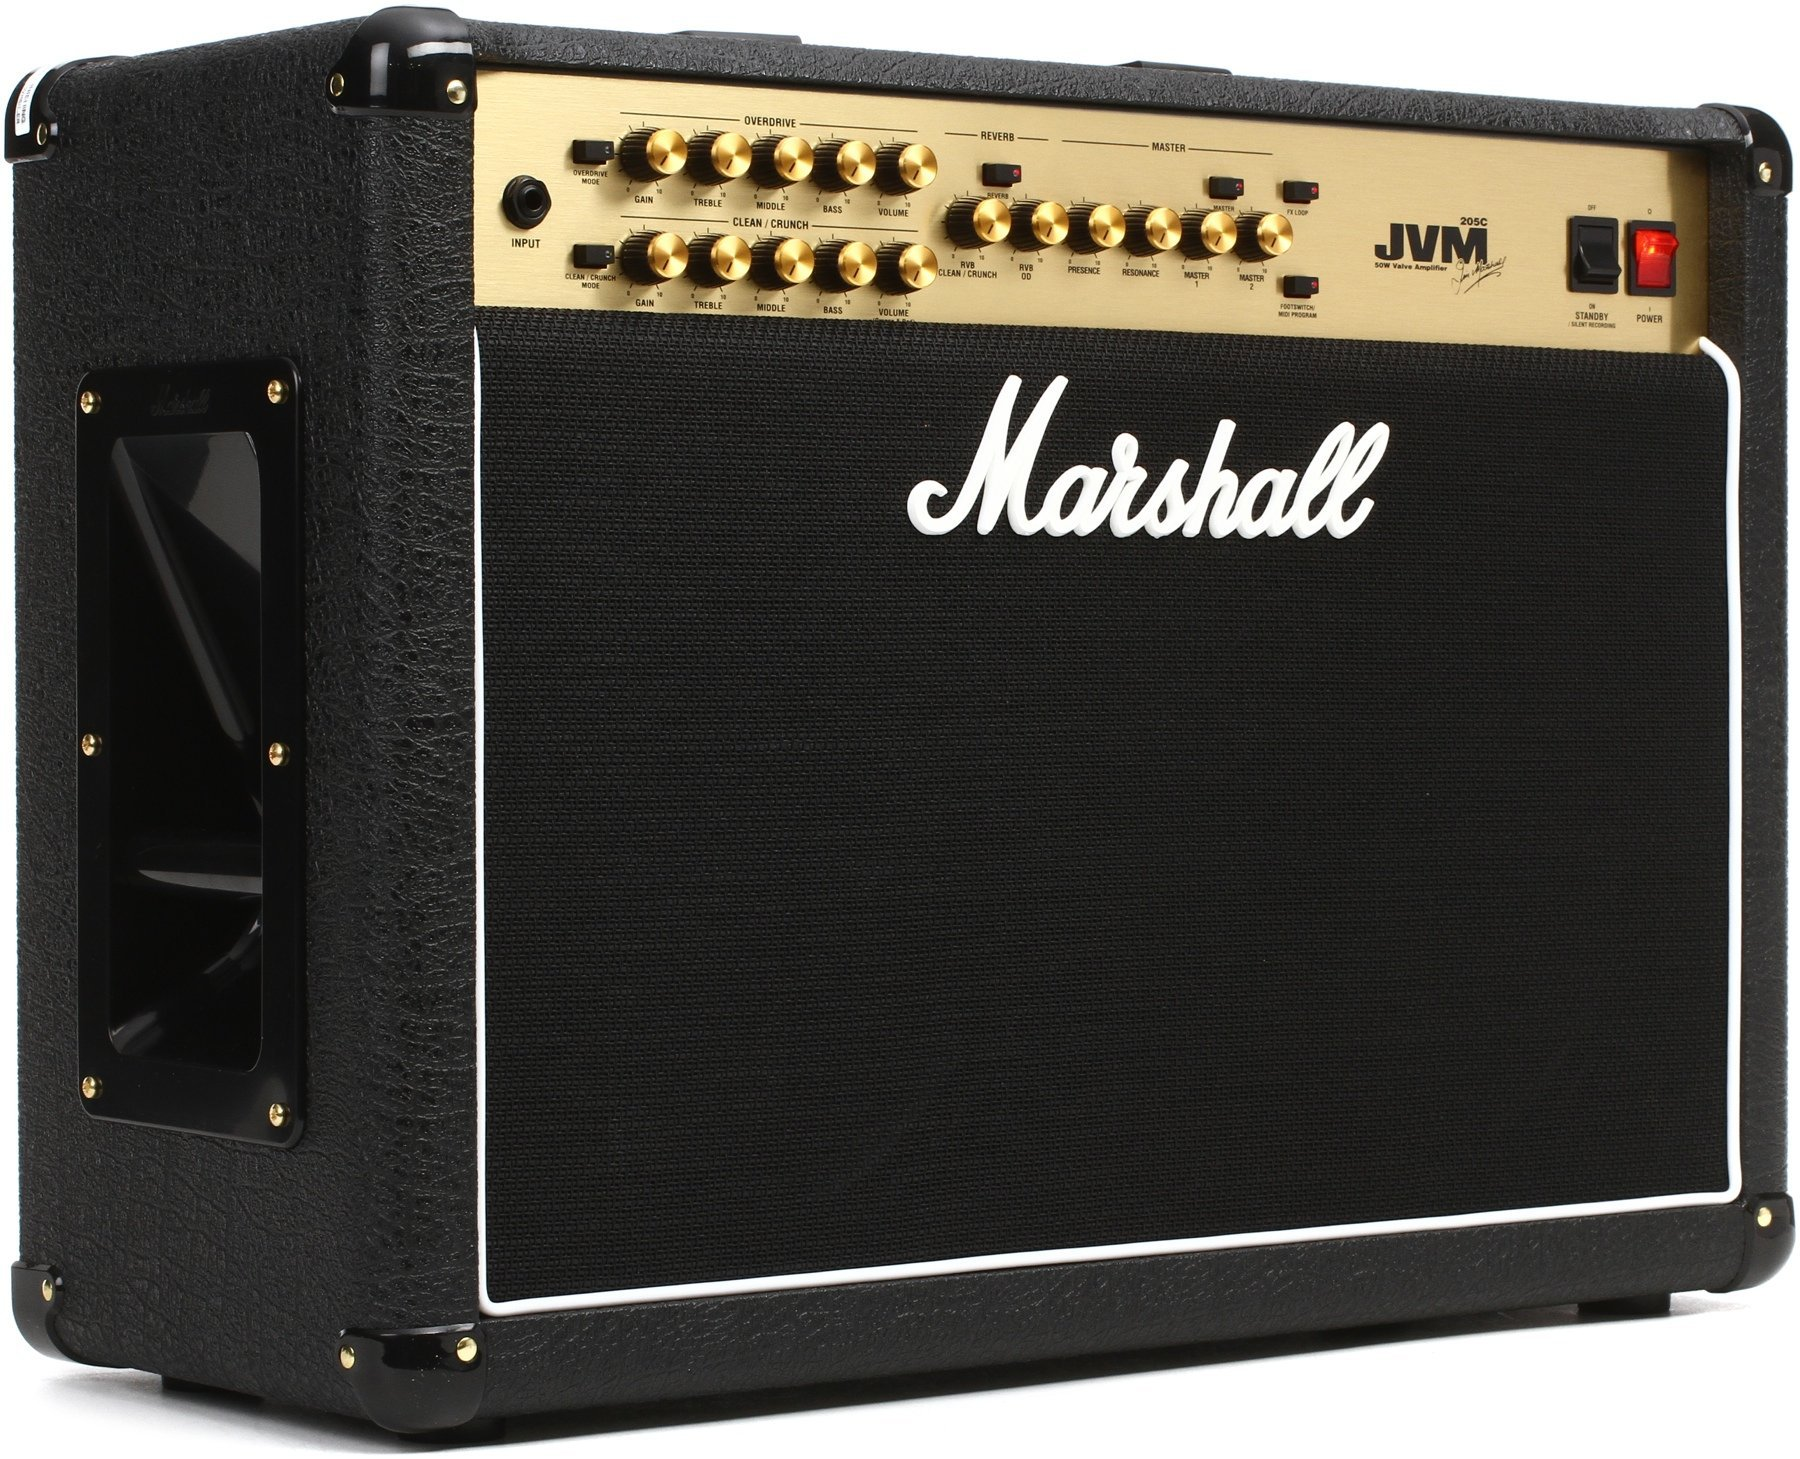 marshall jvm205c jvm series 50 watt 2x12 inch guitar combo amp guitar affinity. Black Bedroom Furniture Sets. Home Design Ideas